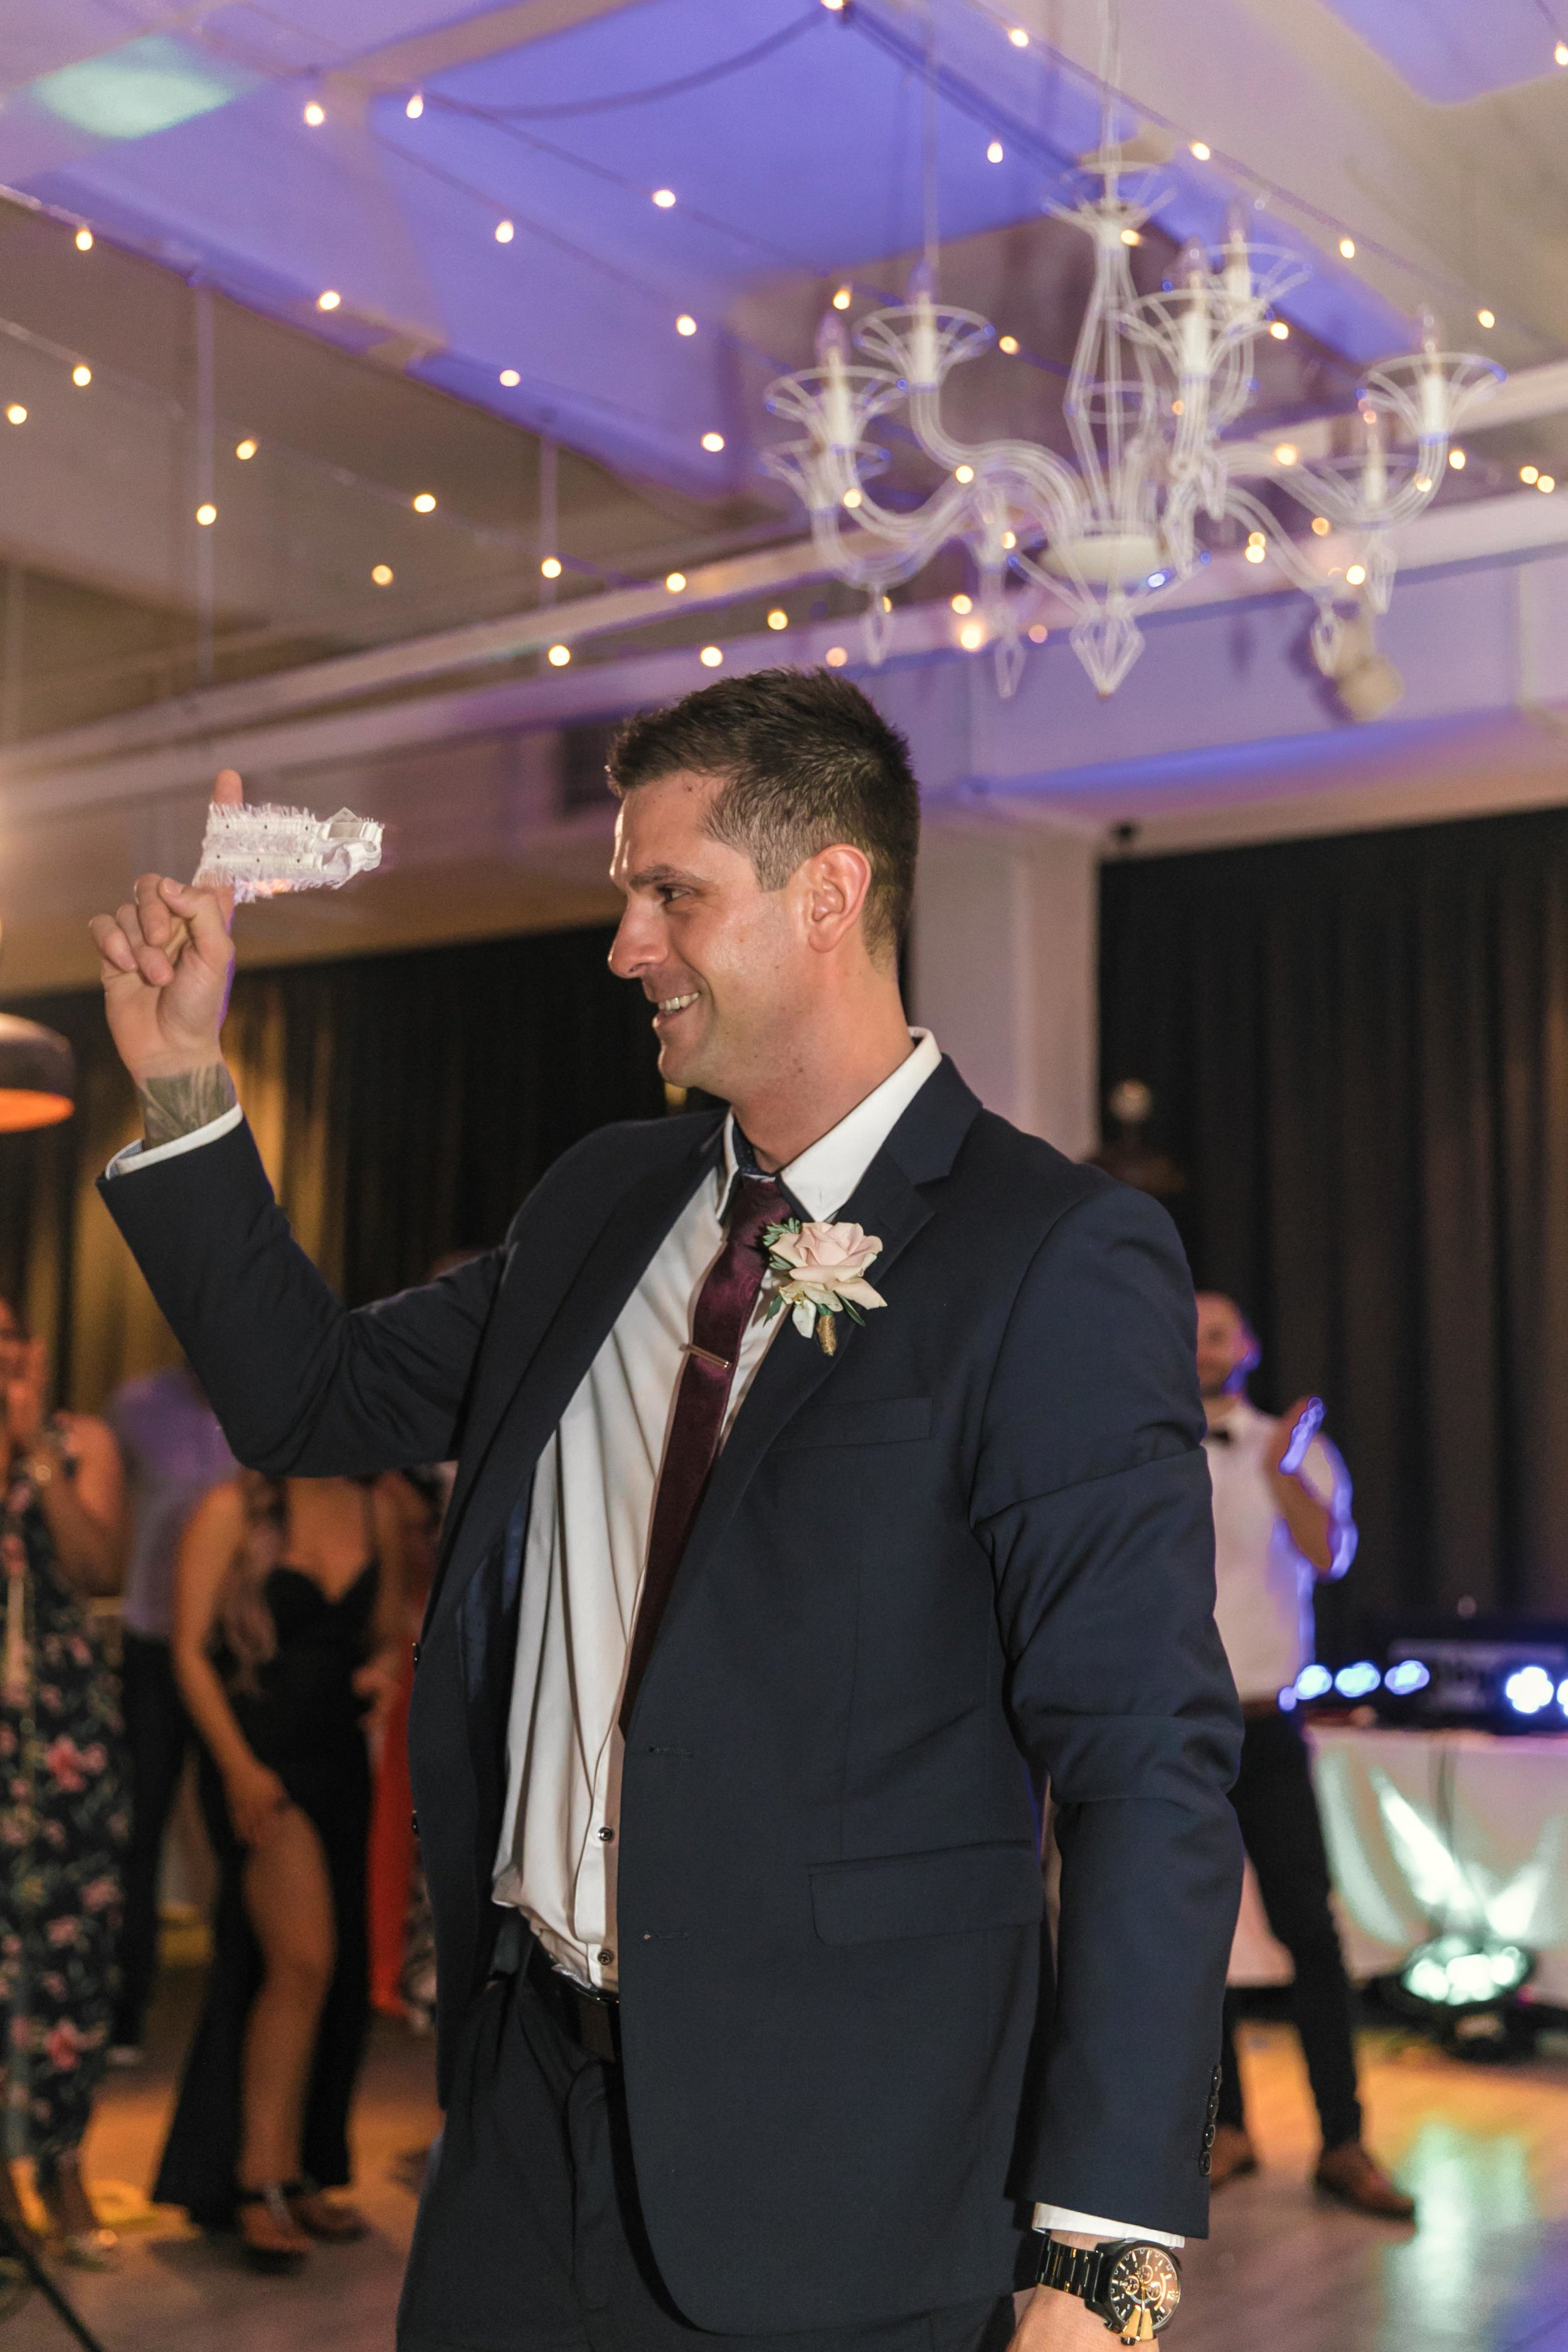 Photographed With Love Candid Wedding Photography Sydney Birkenhead Point